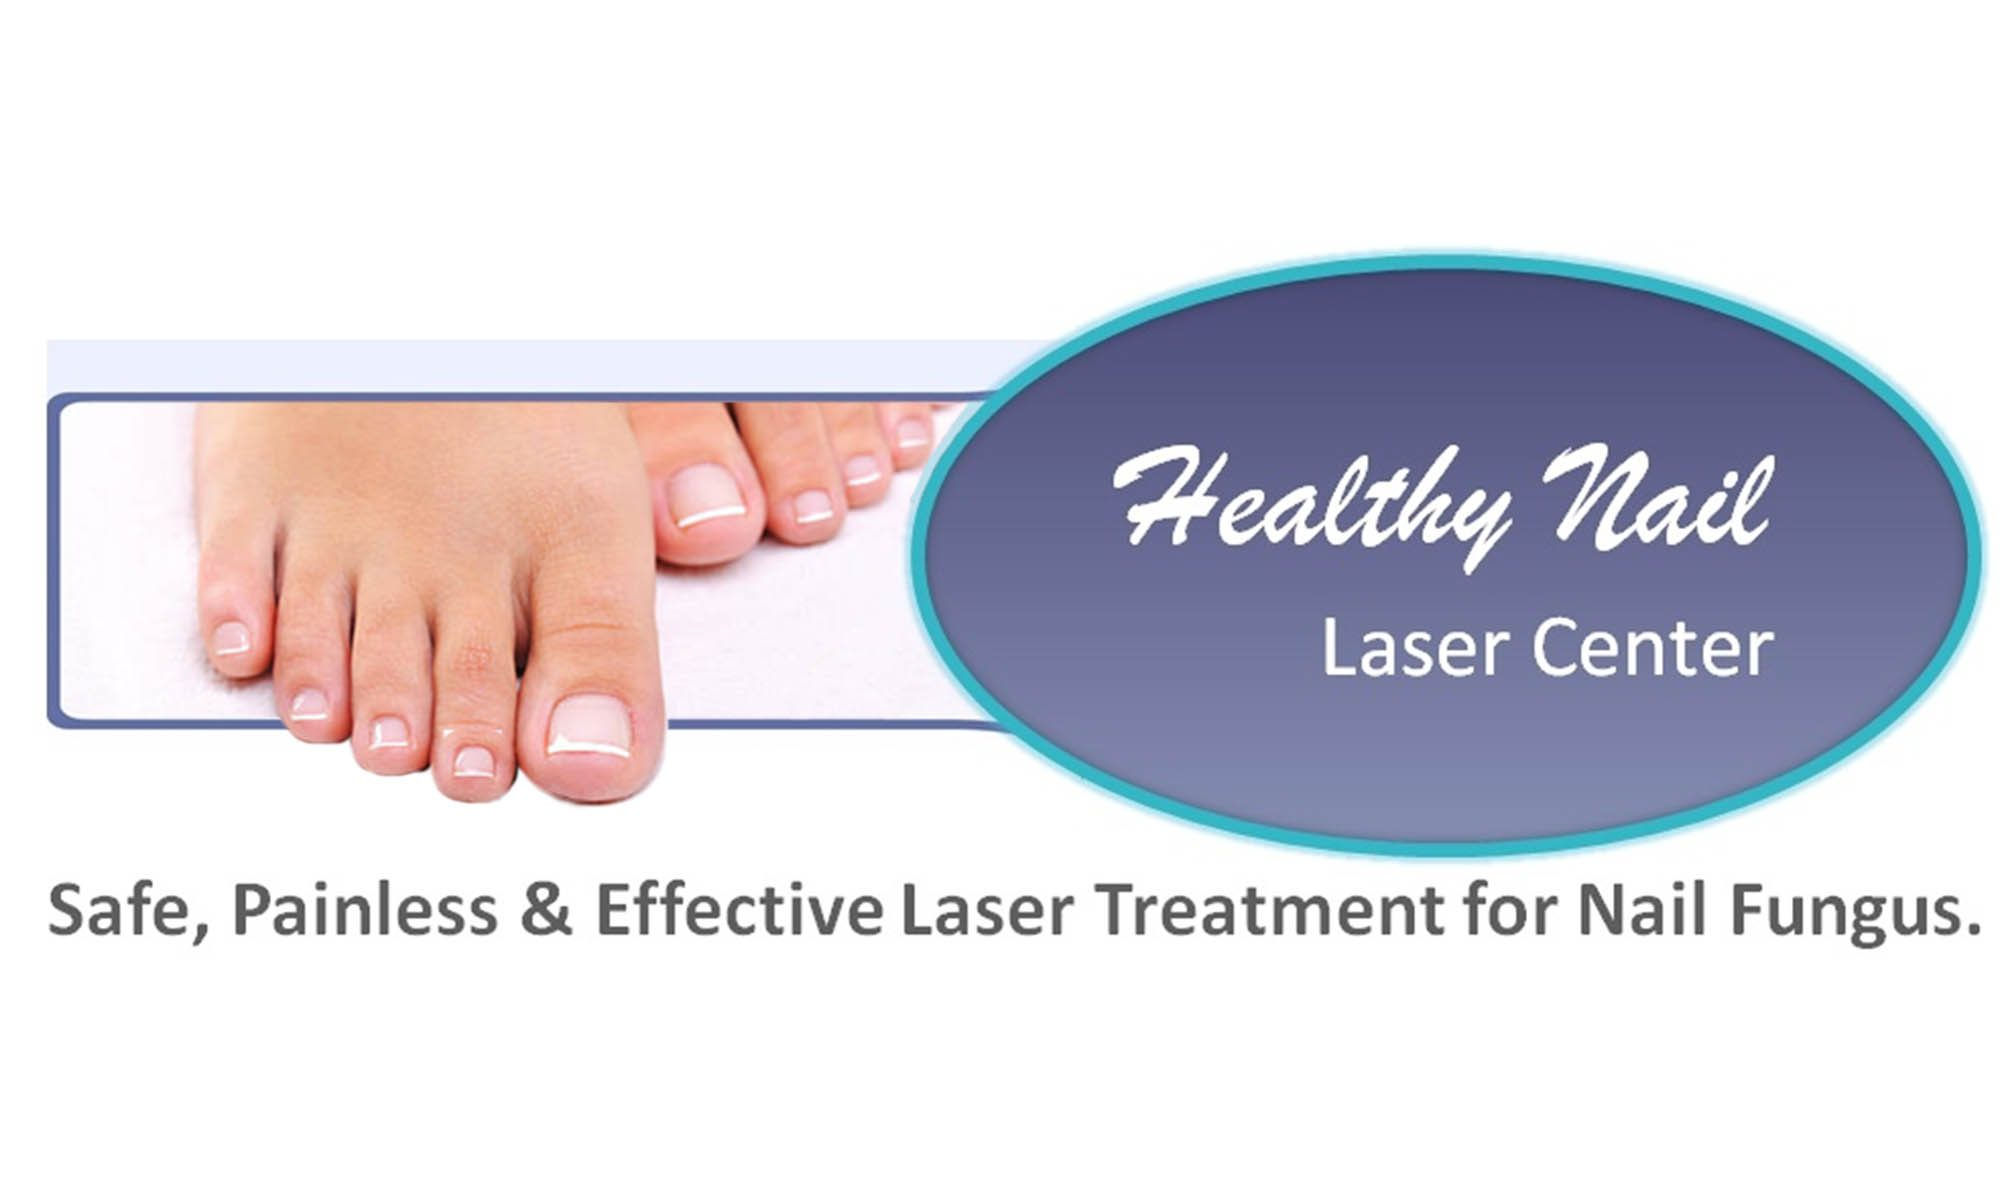 Healthy Nail Laser Center - North Idaho (Ponderay, Sandpoint, Bonners Ferry, Coeur d'Alene)